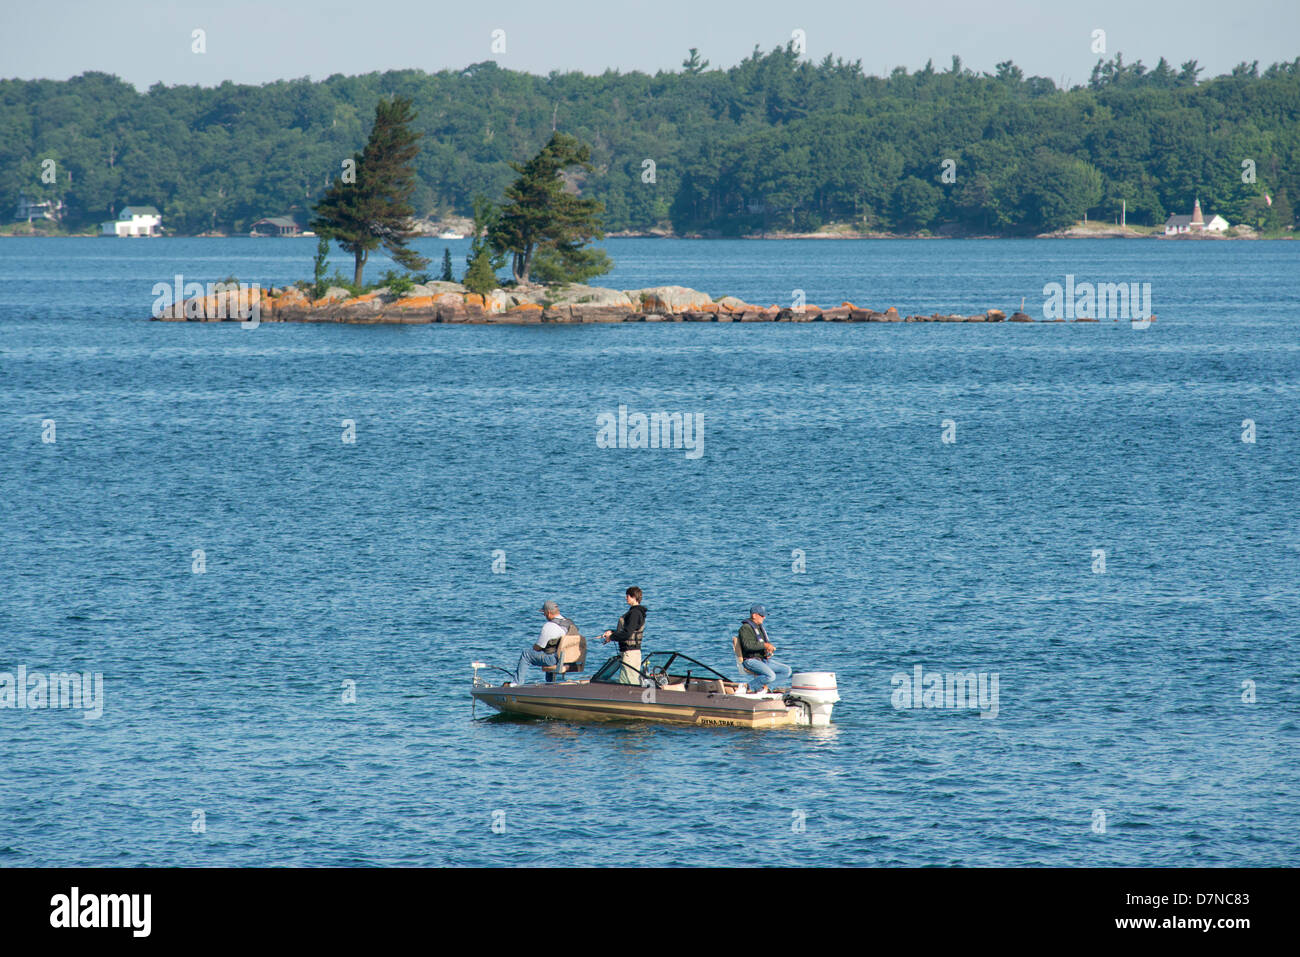 New York, St. Lawrence Seaway, Thousand Islands. The 'American Narrows'. Fishing boat. - Stock Image